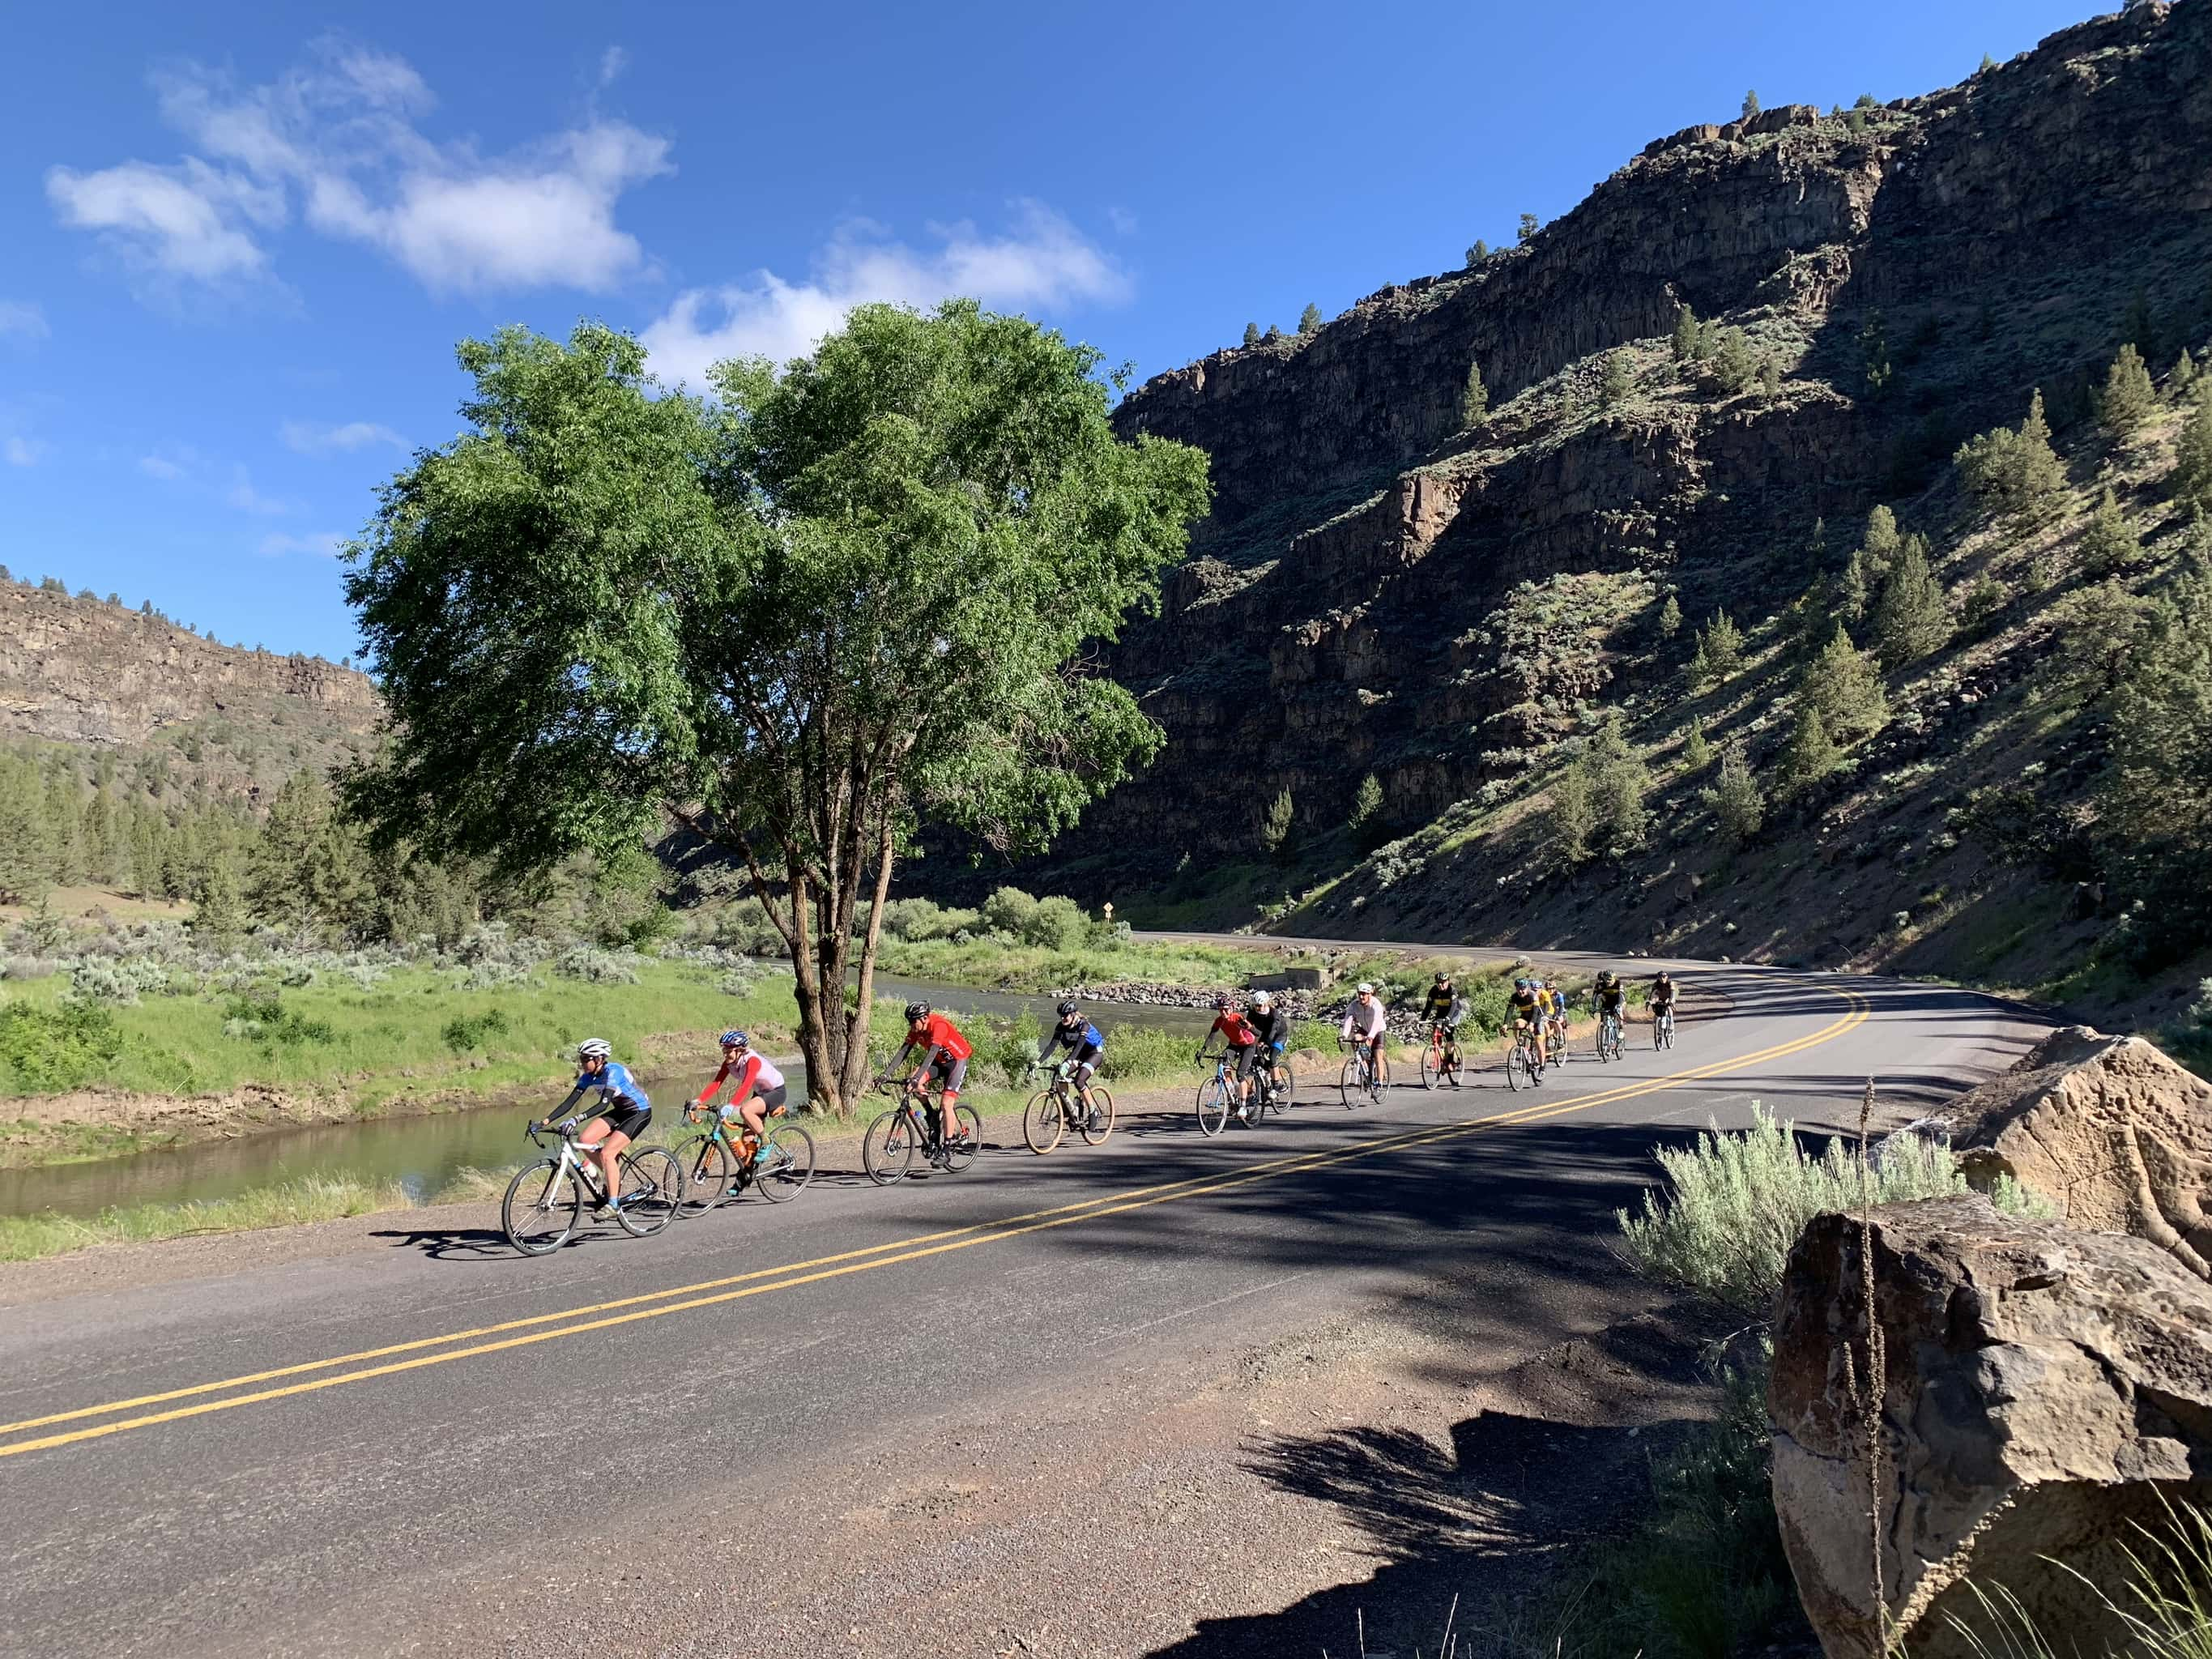 Group of cyclists on the road on the Crooked River Canyon.